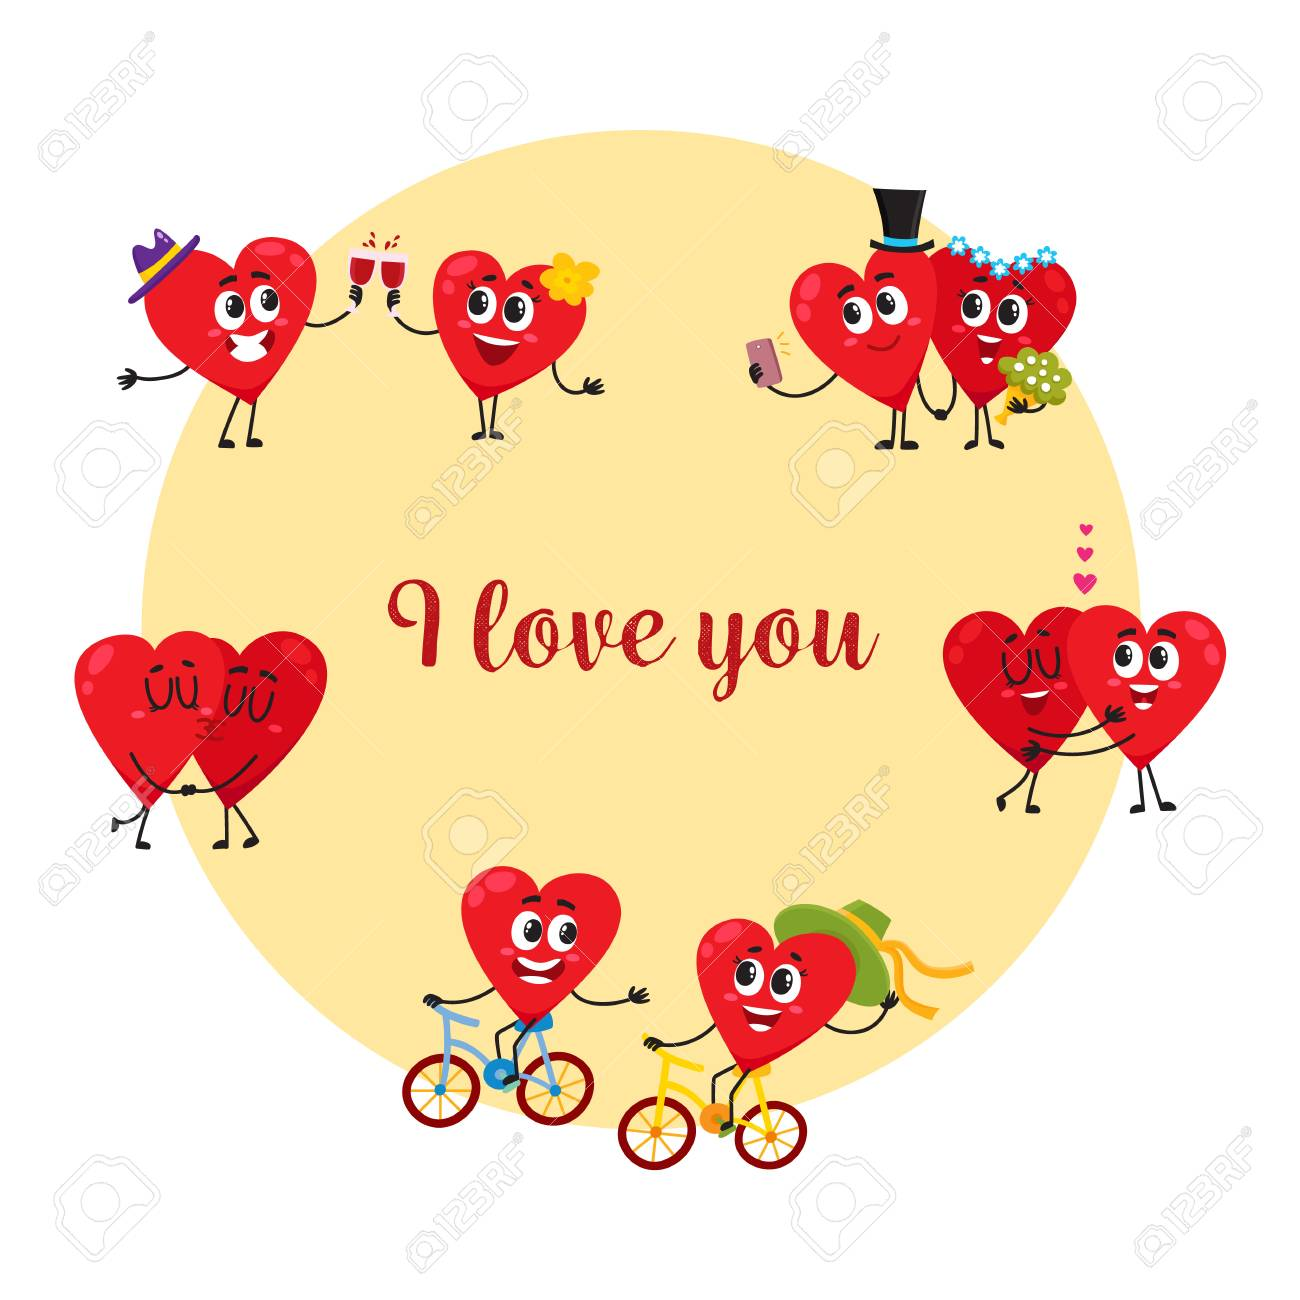 I love you greeting card postcard design with couples of loving i love you greeting card postcard design with couples of loving heart characters kristyandbryce Gallery